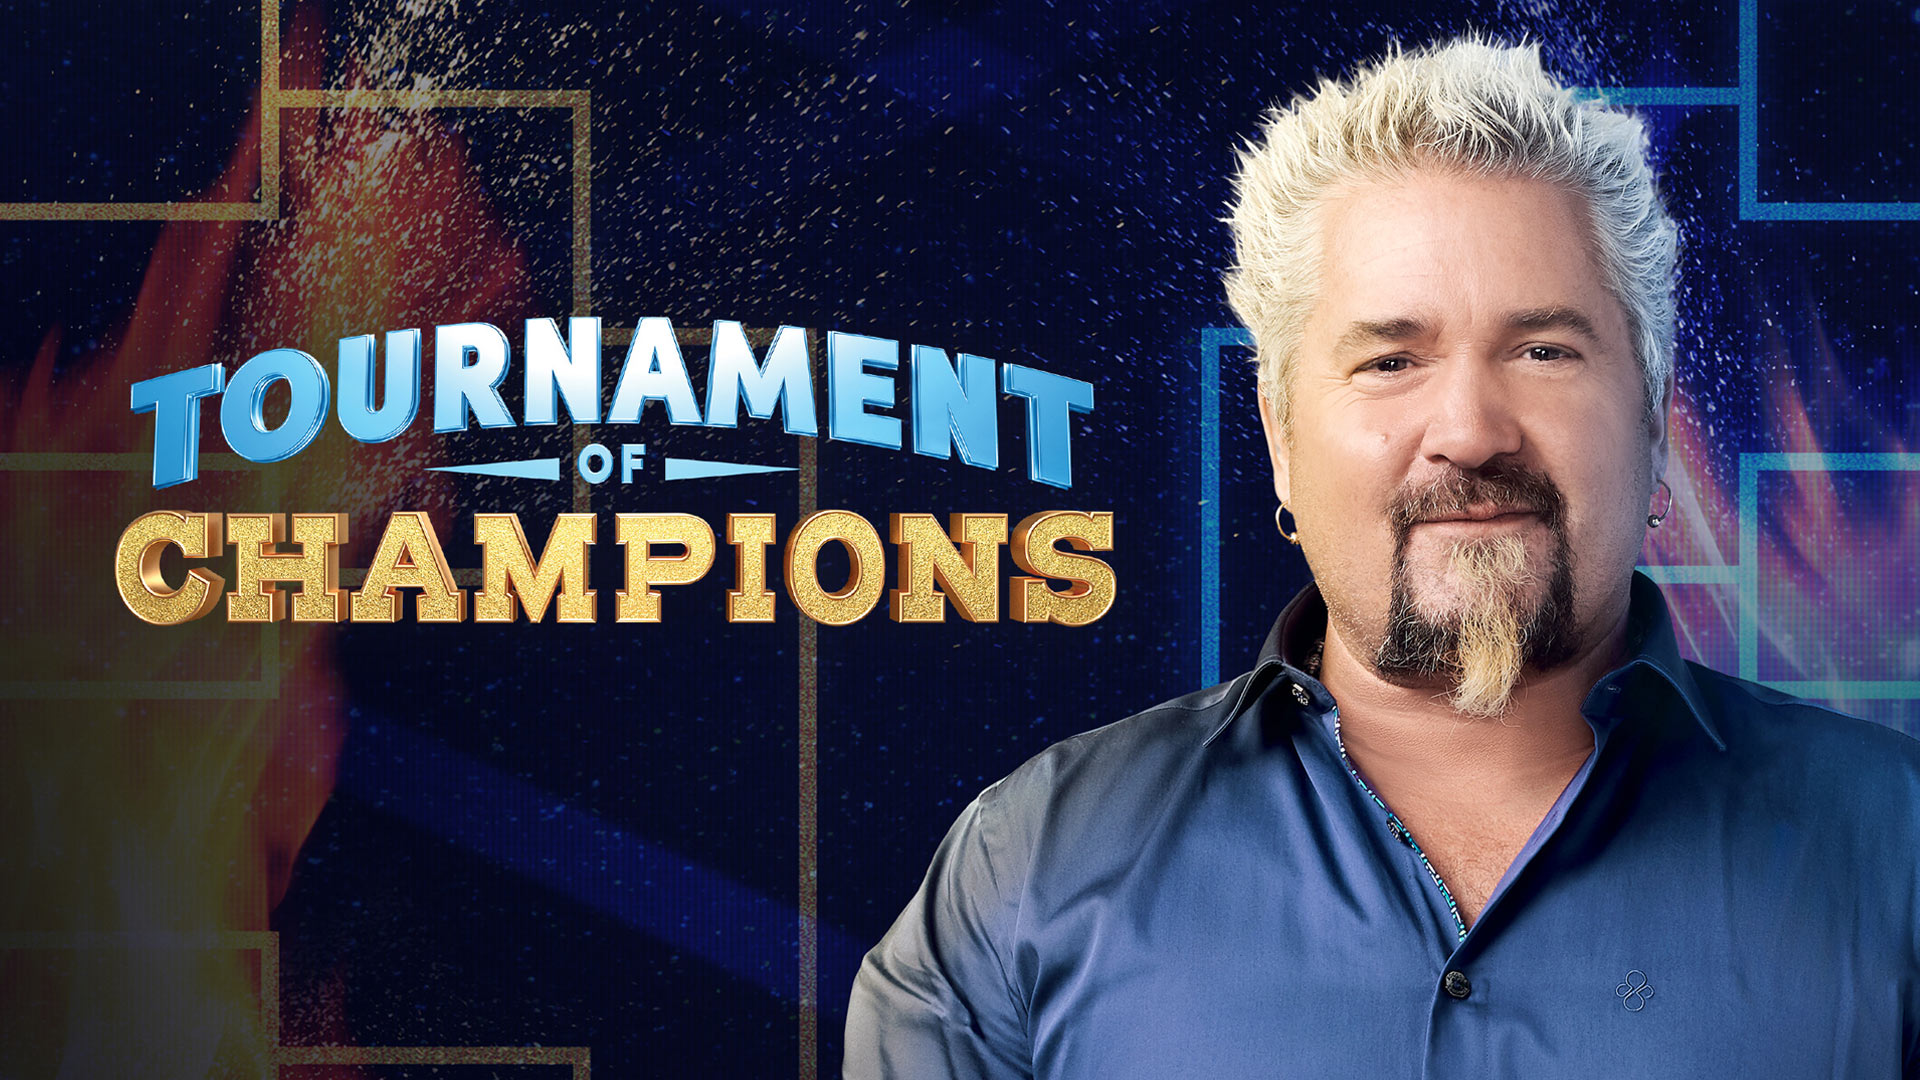 Tournament of Champions, Season 1